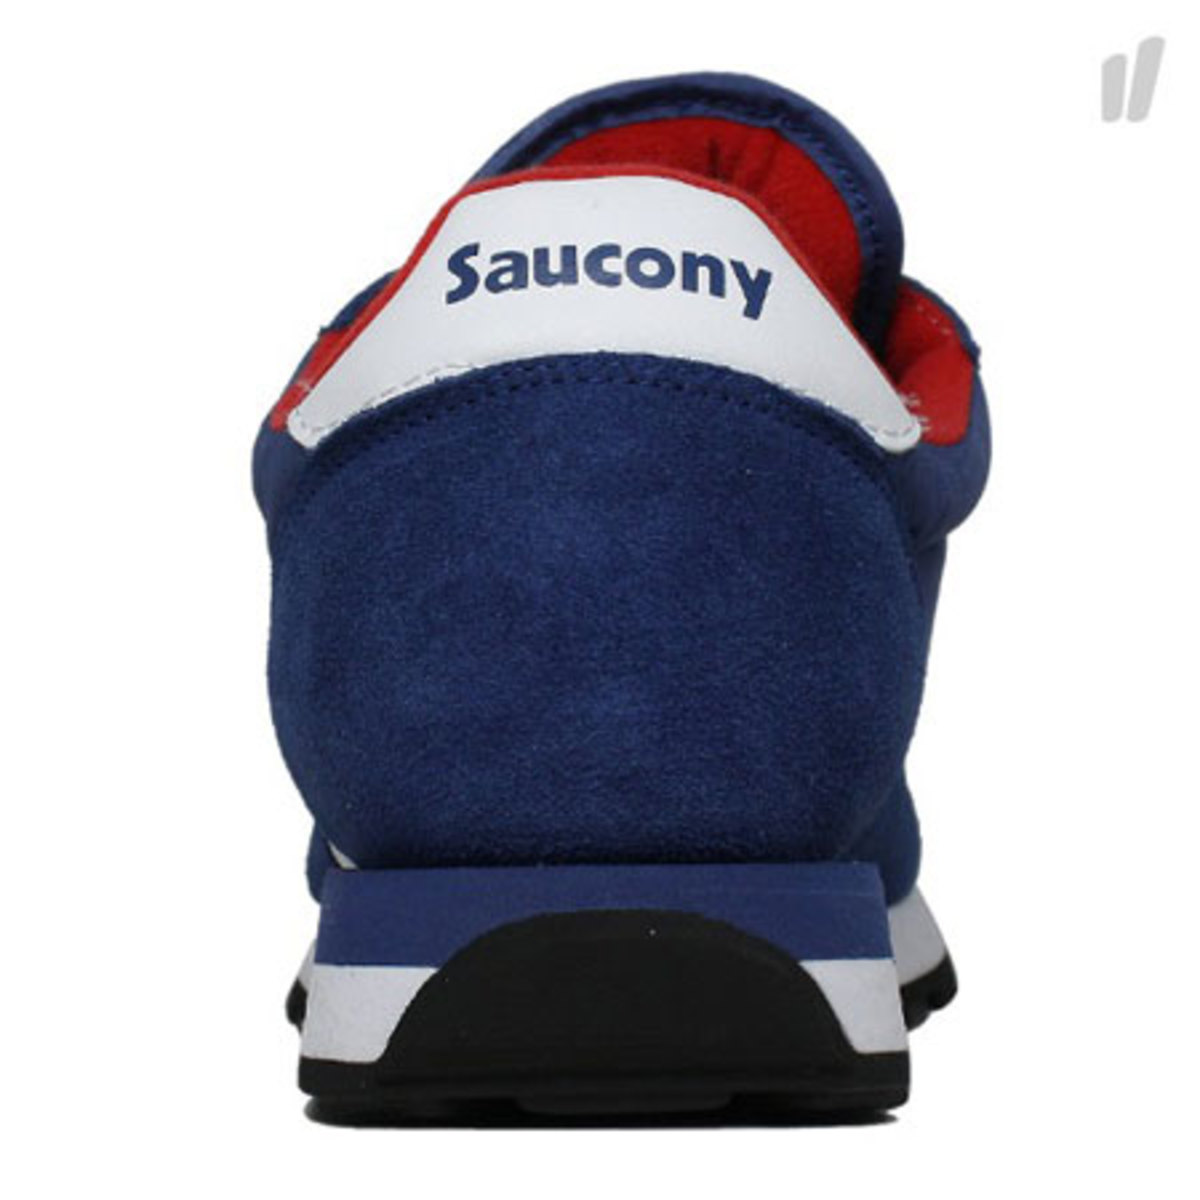 saucony-spring-2013-collection-30